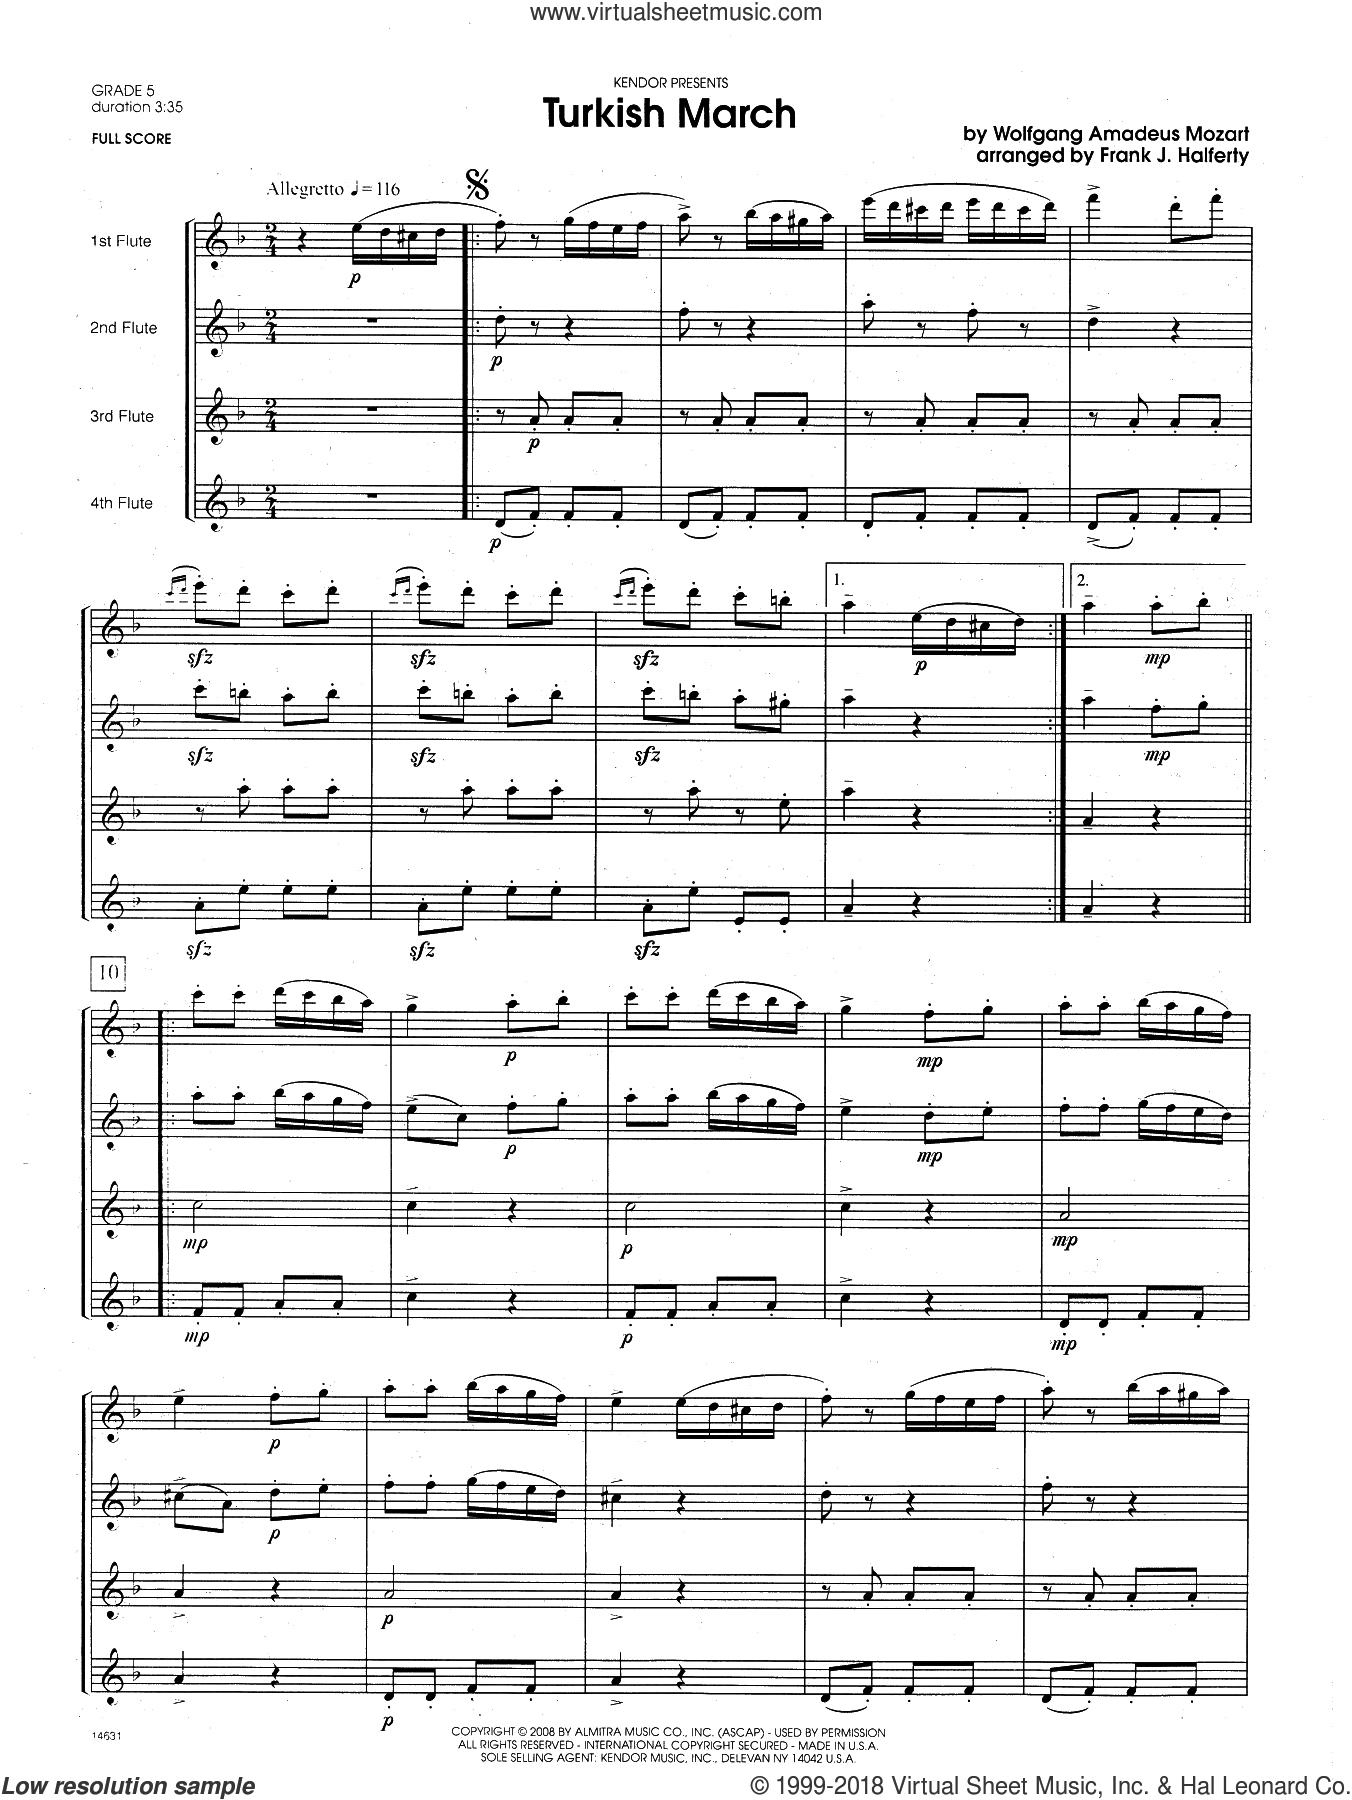 Turkish March (COMPLETE) sheet music for flute quartet by Wolfgang Amadeus Mozart and Frank J. Halferty, classical score, intermediate skill level